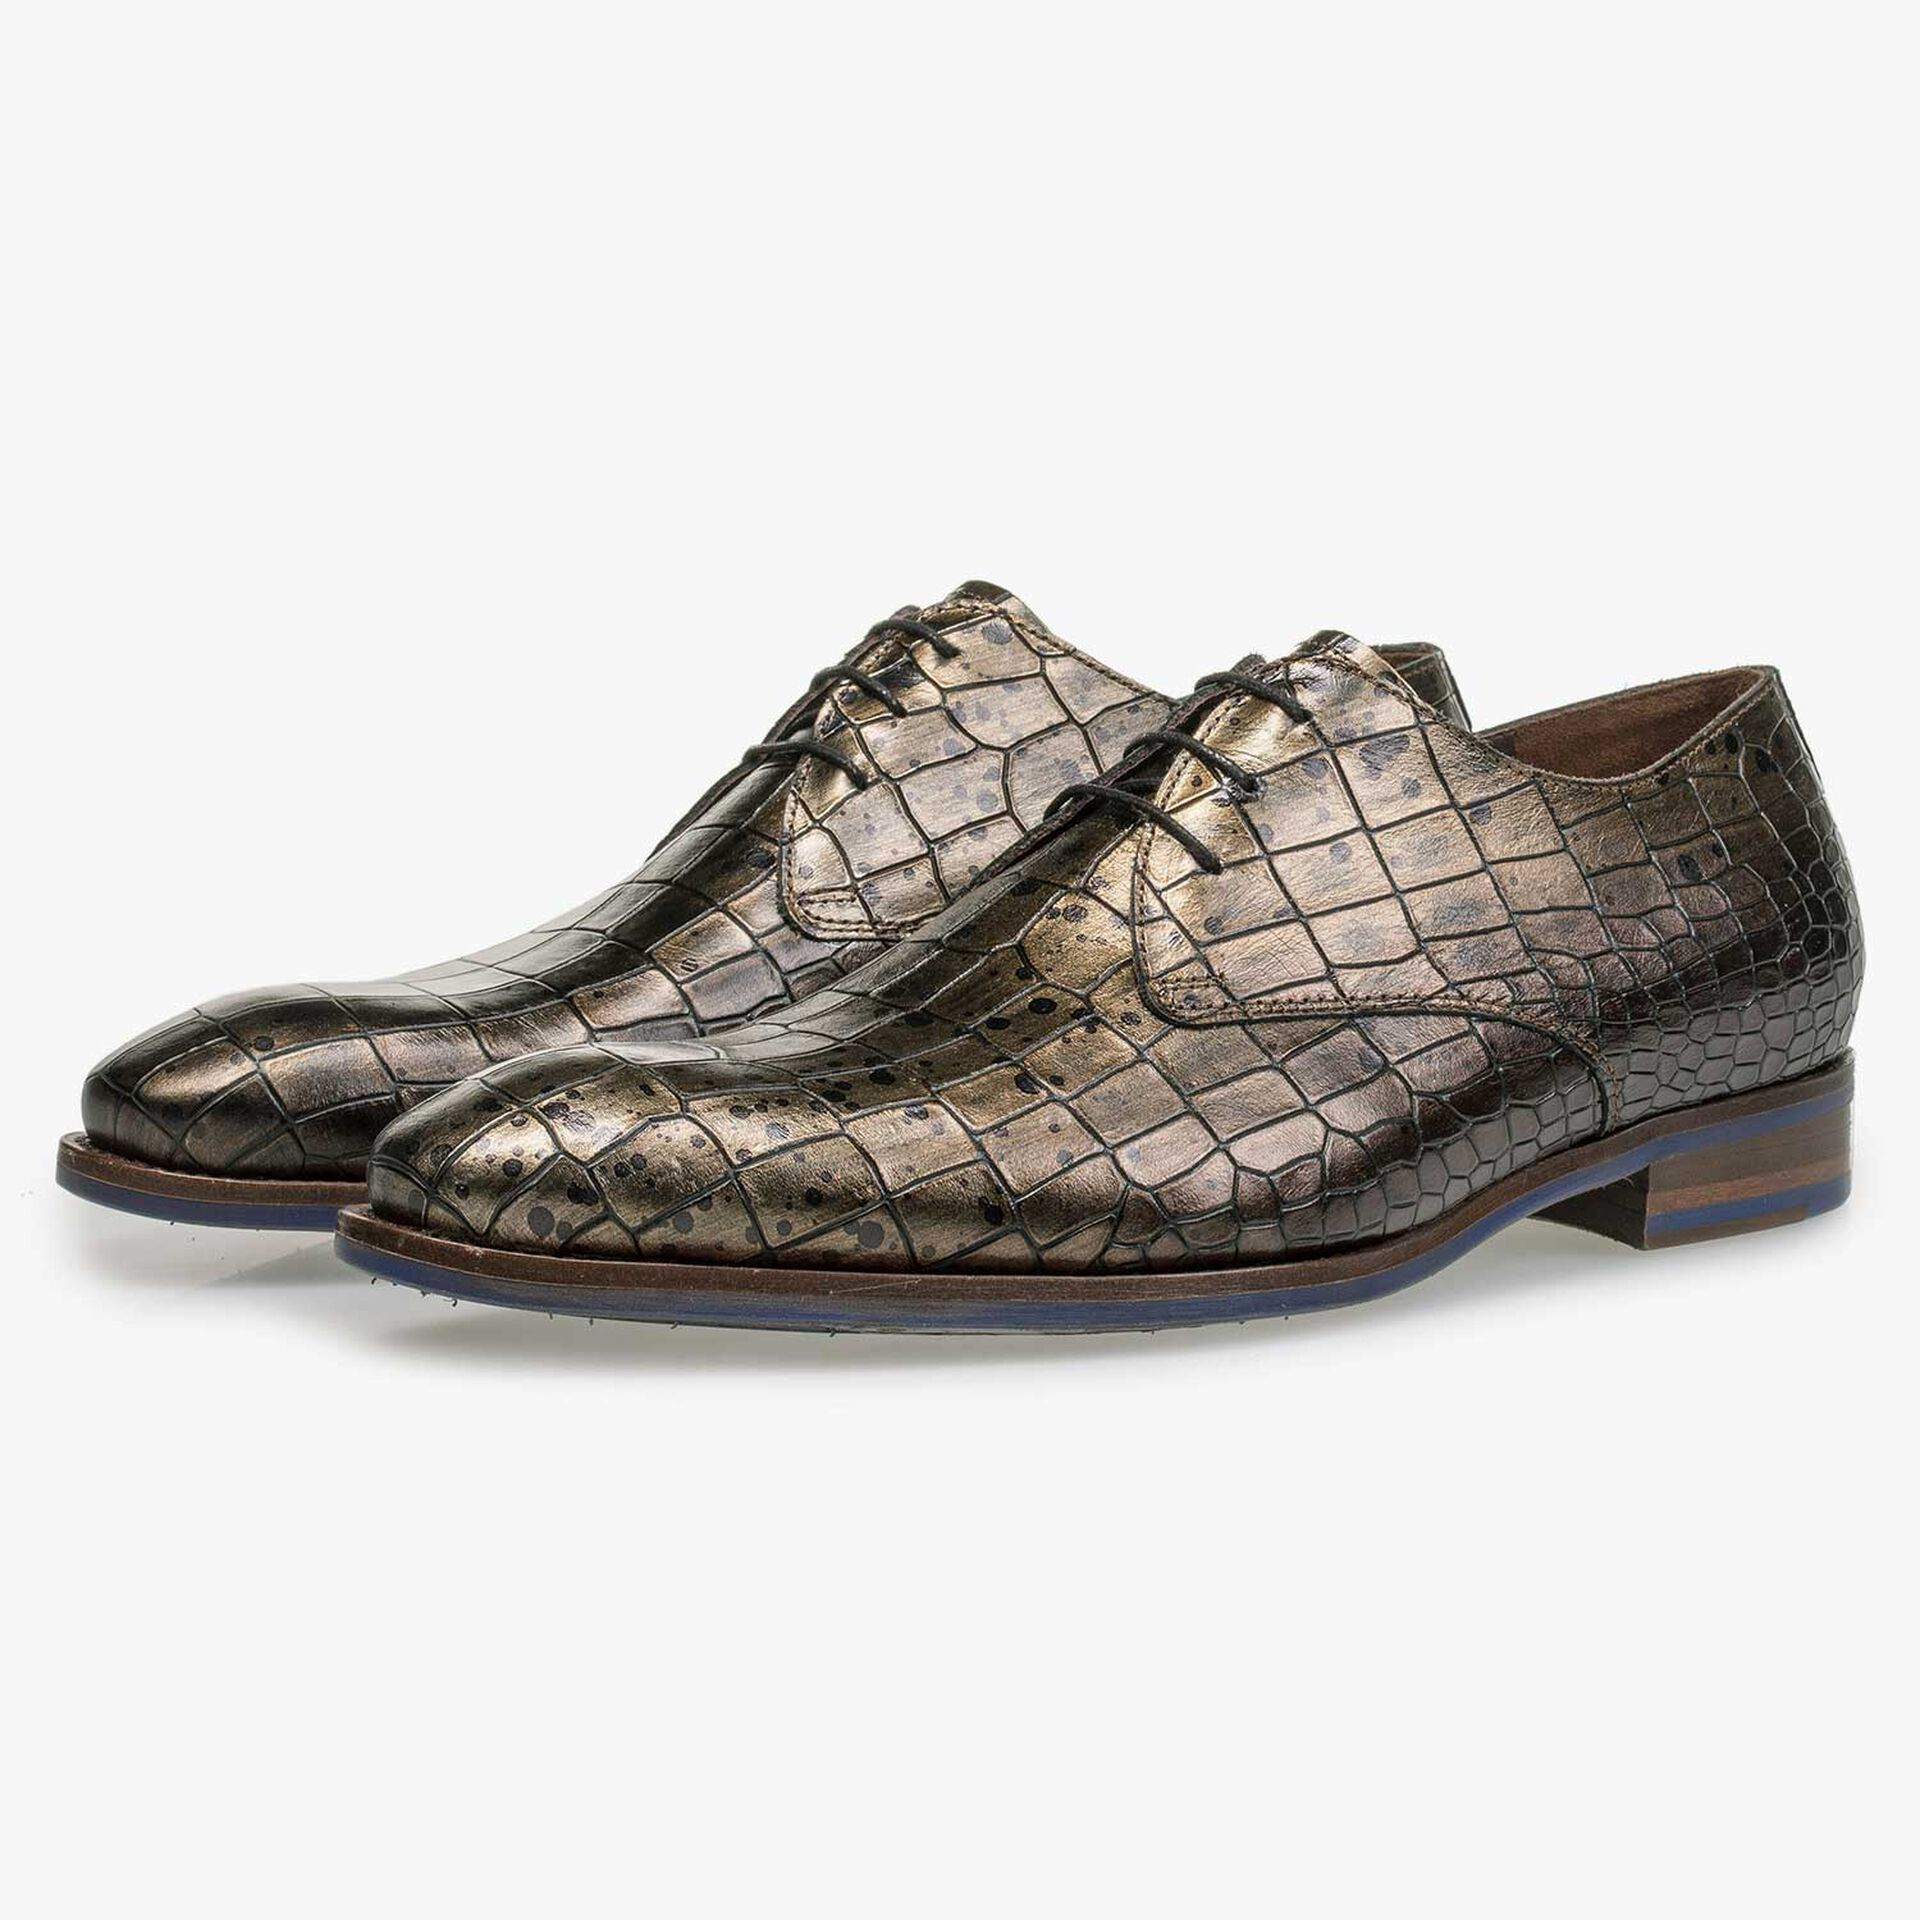 Calf's leather lace shoe with croco print